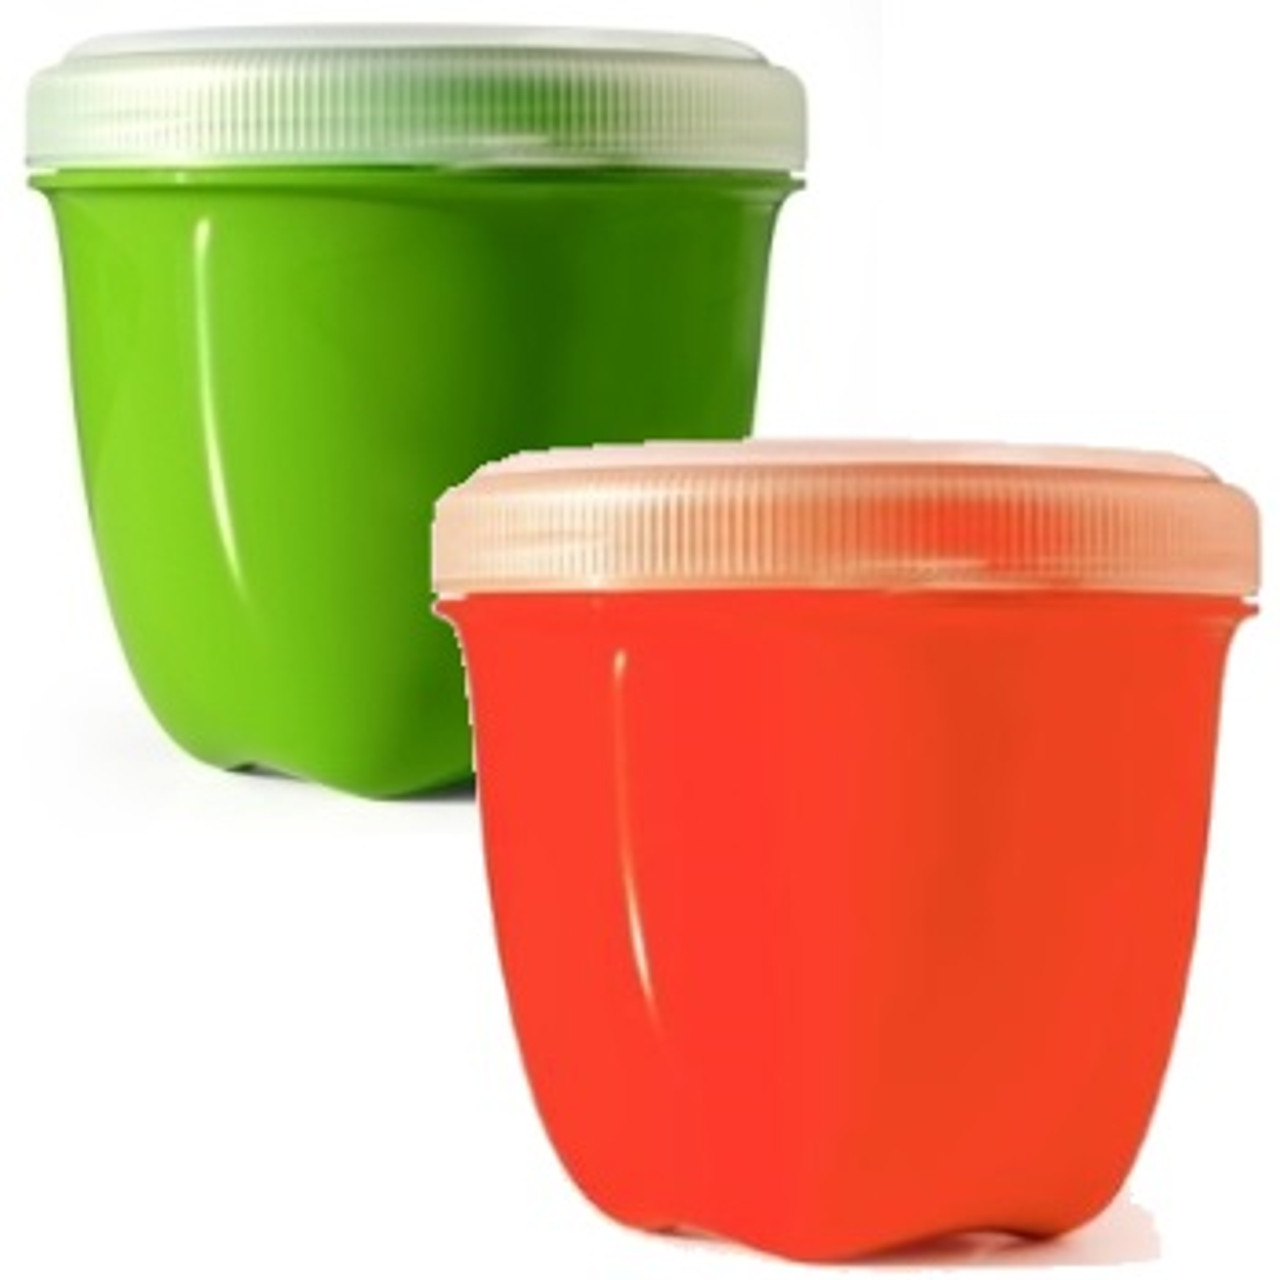 8 oz Leak-Proof Snack Container by Preserve